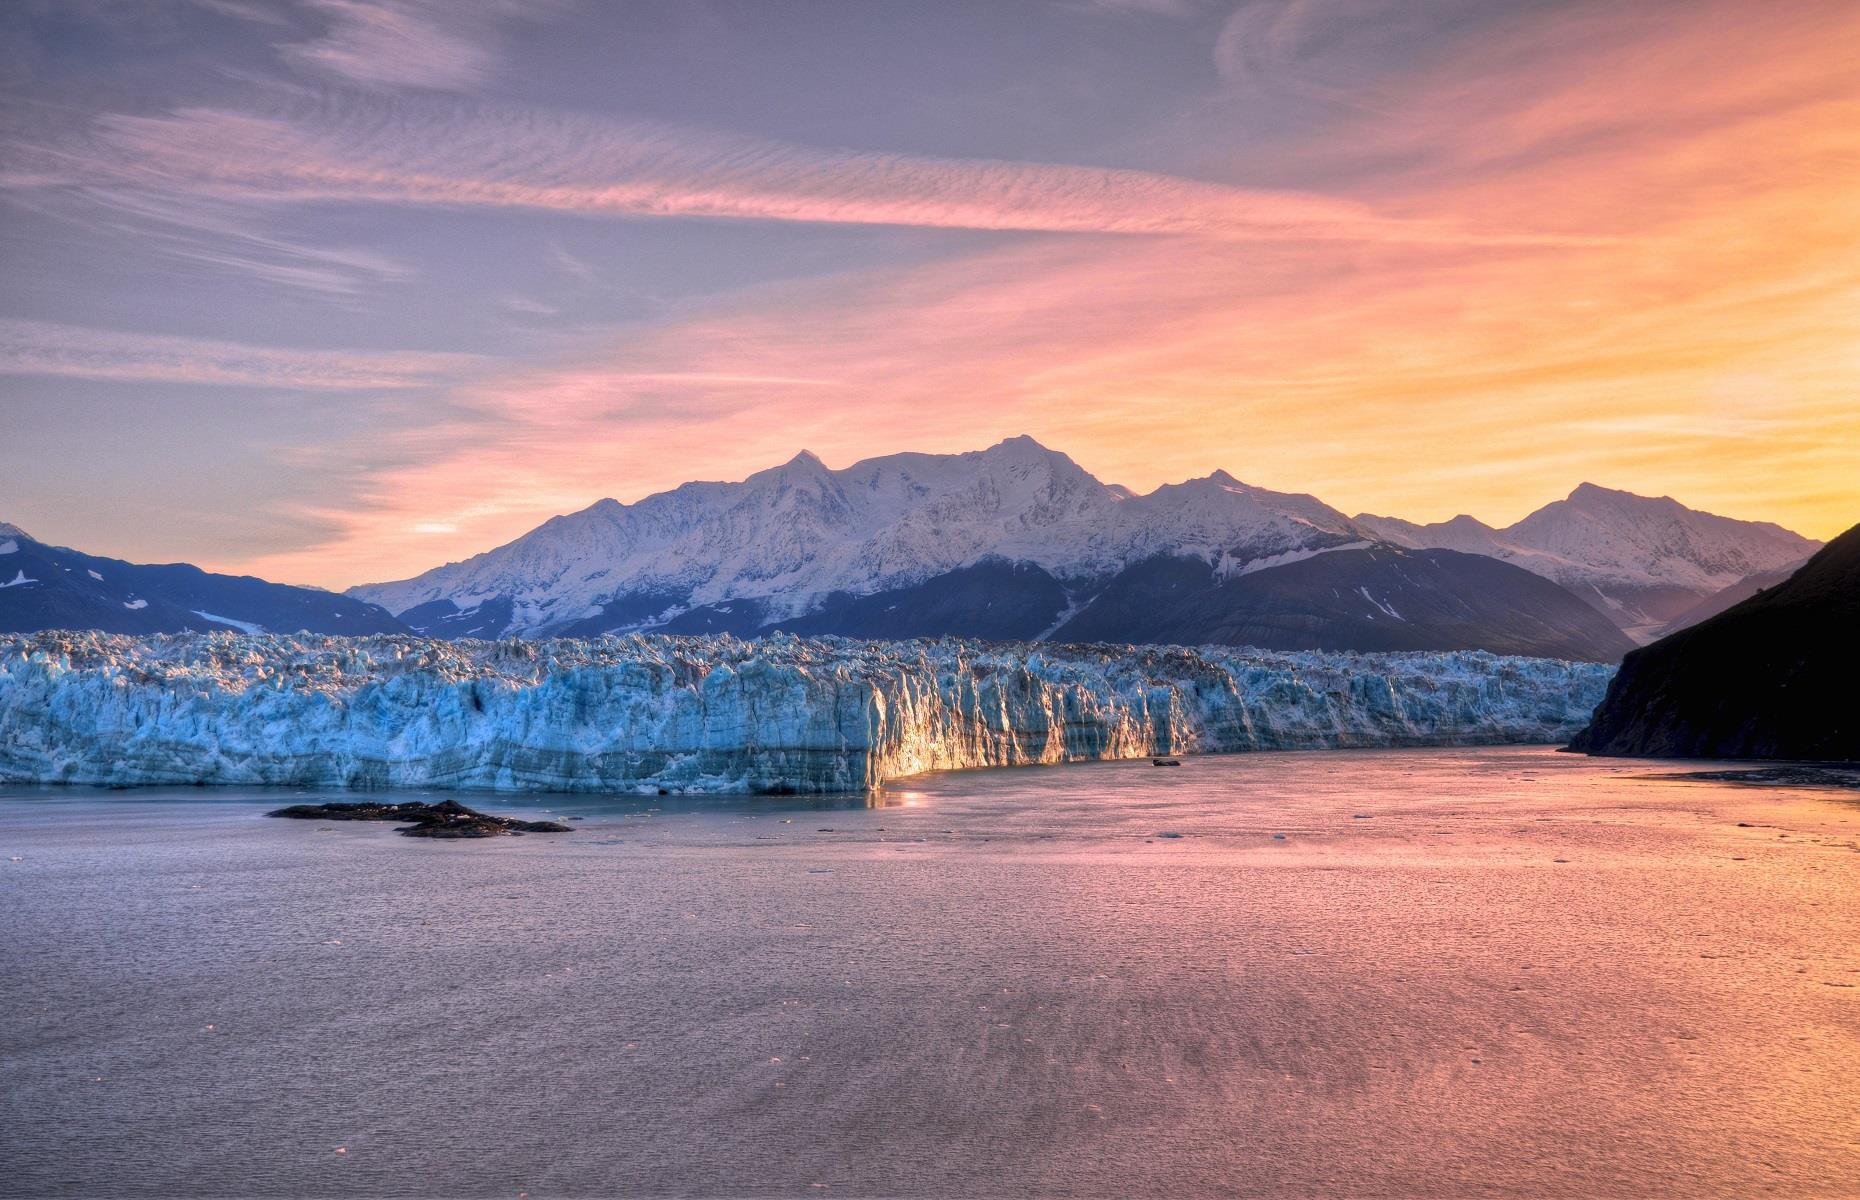 Slide 38 of 59: The Hubbard Glacier in Alaska sits peacefully off the coast of Yakutat. Its majestic face stretches up to 400 feet (122m) tall and six miles (9.6km) wide. Most of the ice is below water but what you can see is still incredibly impressive. Cruise ships aren't allowed to get too close as the ice can be very thick.